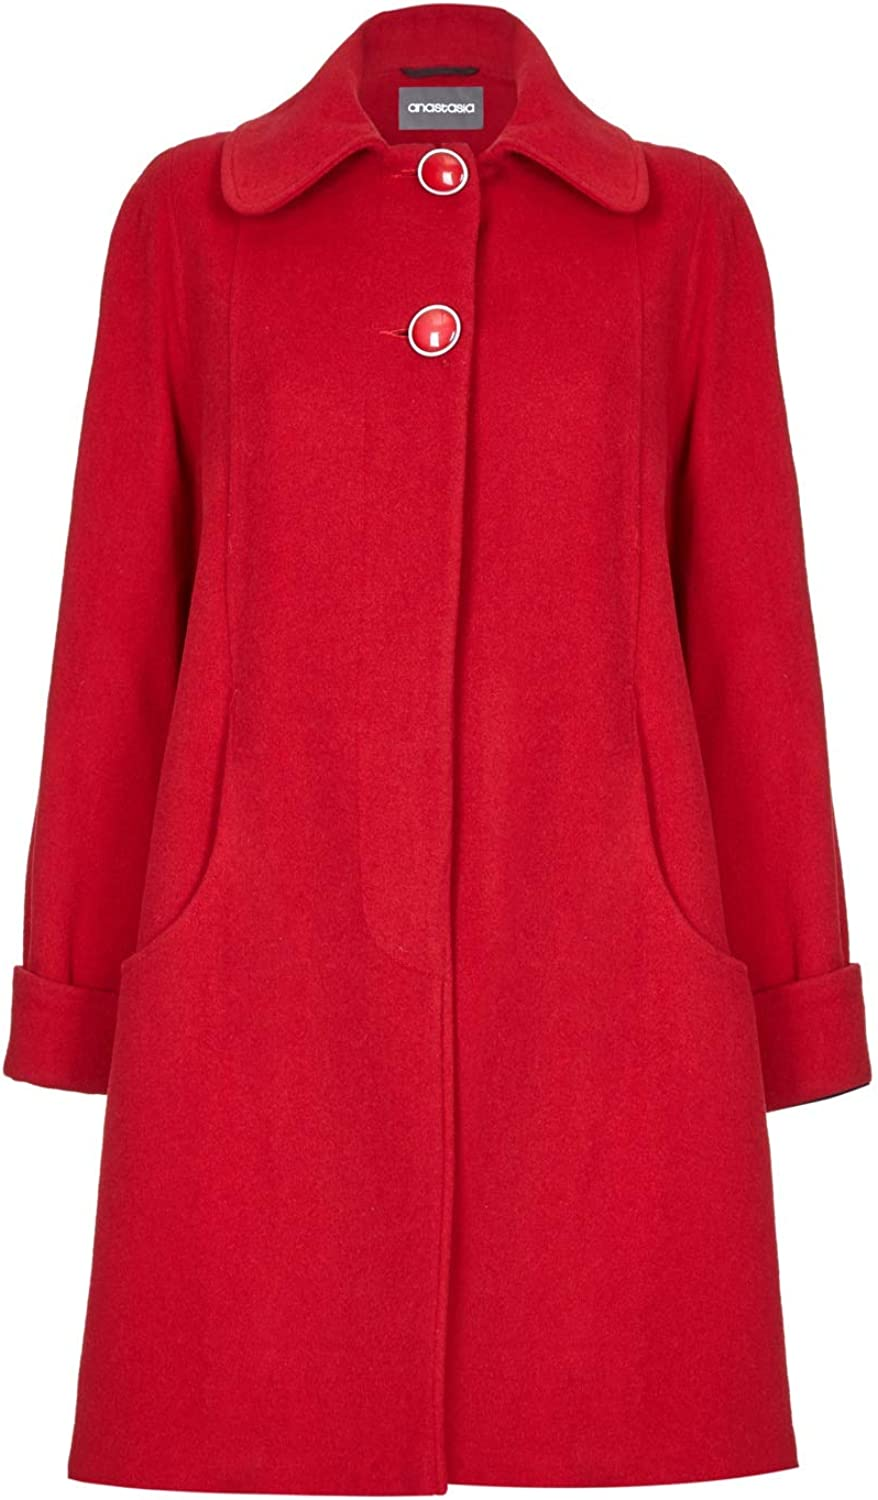 De La Creme Womens Swing Wool Cashmere Winter Coat